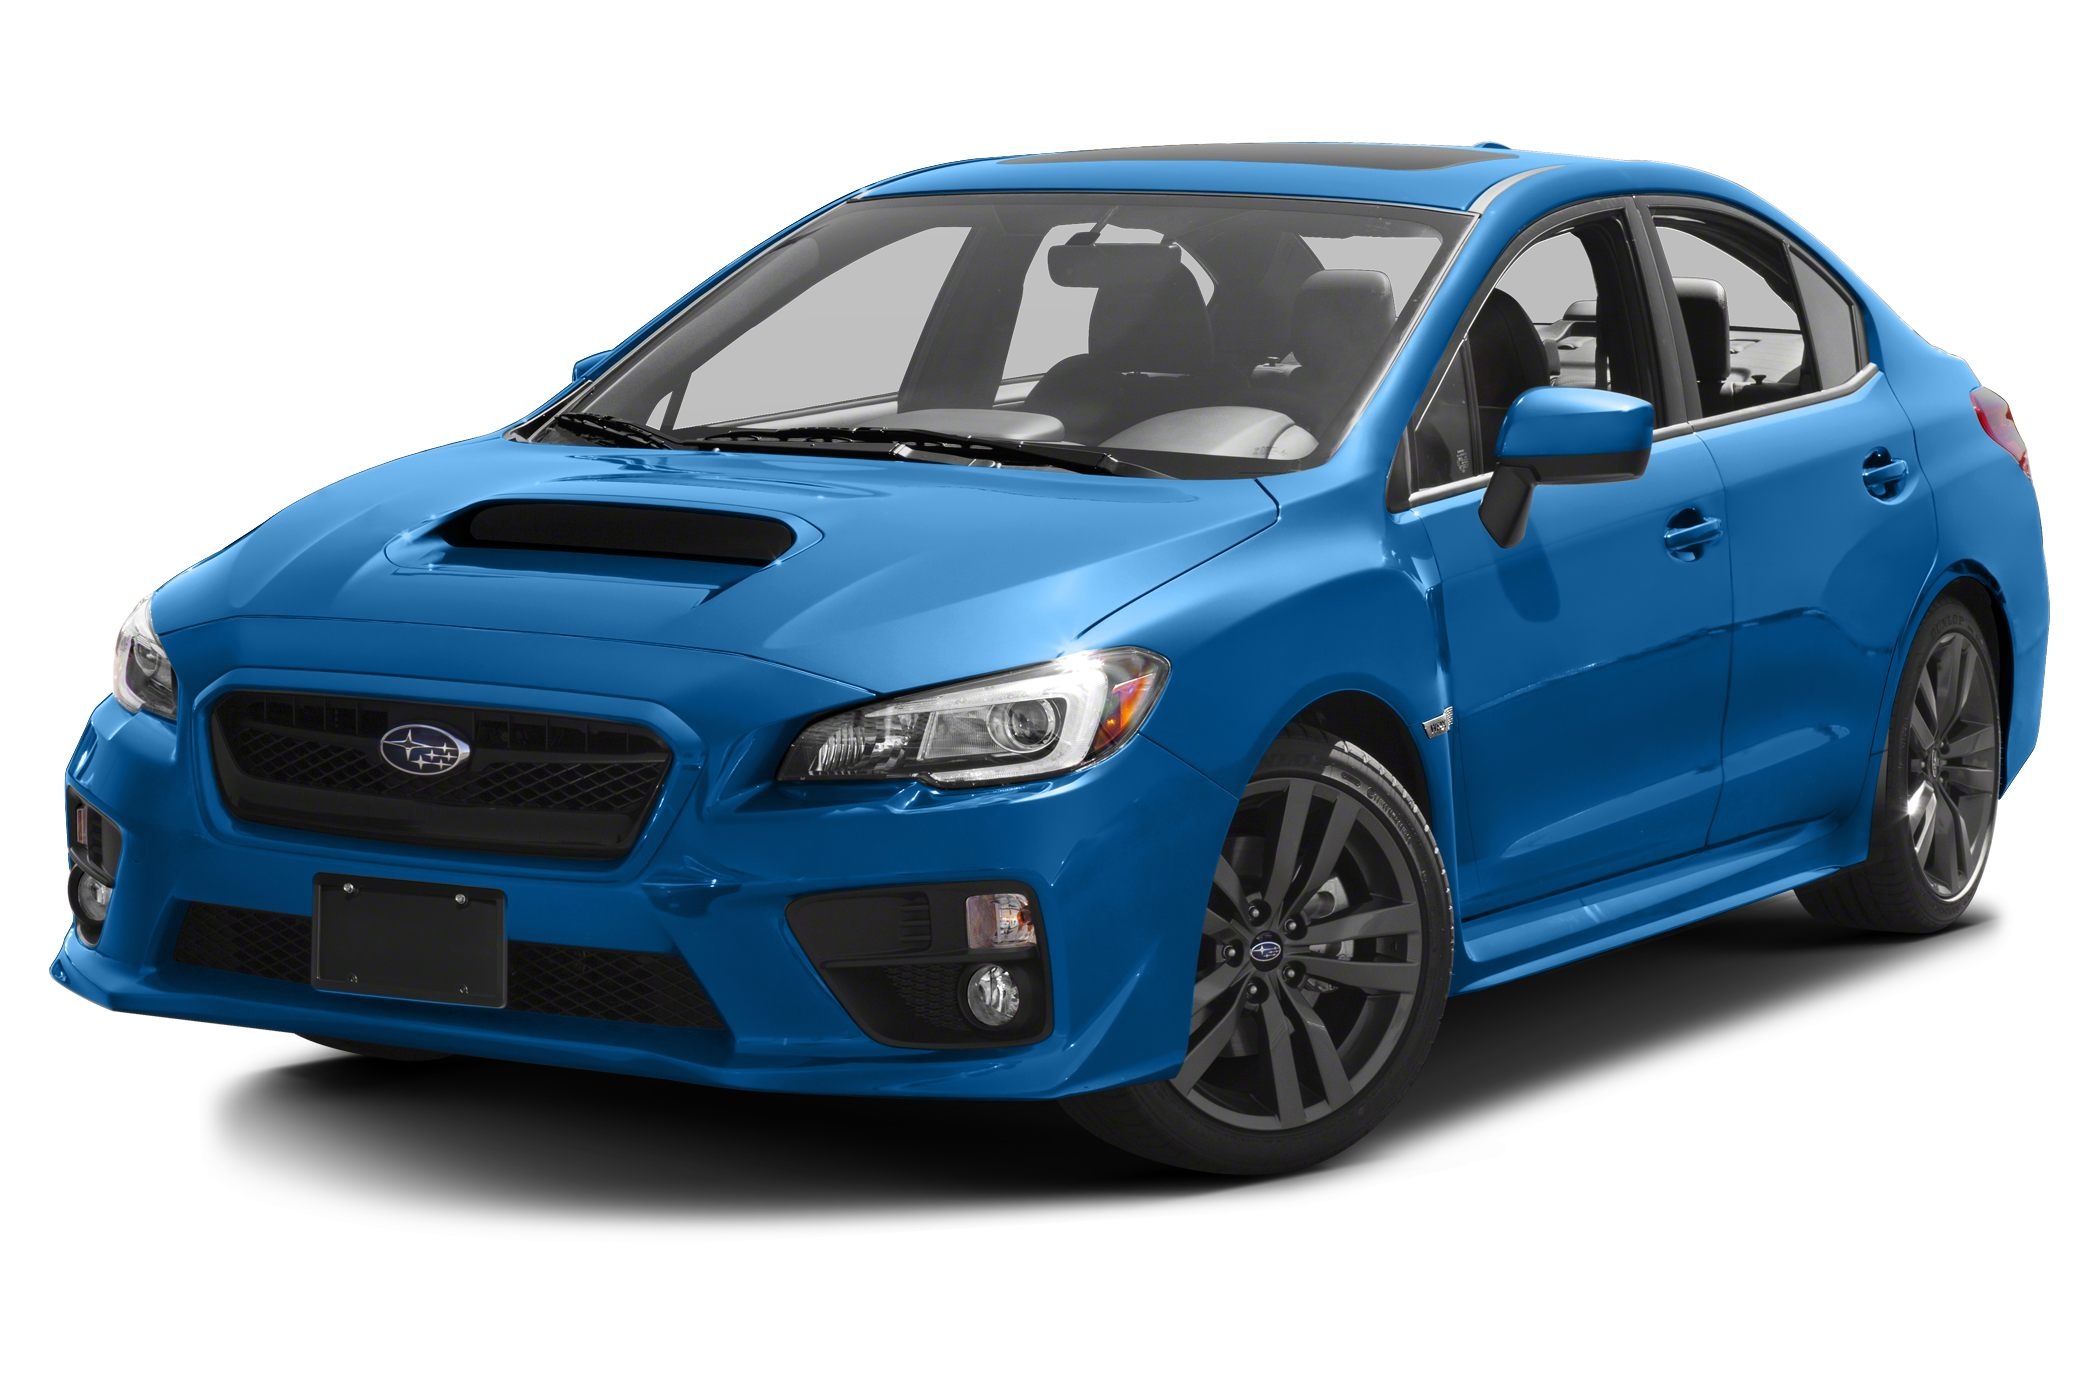 100 subaru wrc 2017 subaru impreza wrc 2633555 subaru wrx sti review top gear subaru. Black Bedroom Furniture Sets. Home Design Ideas